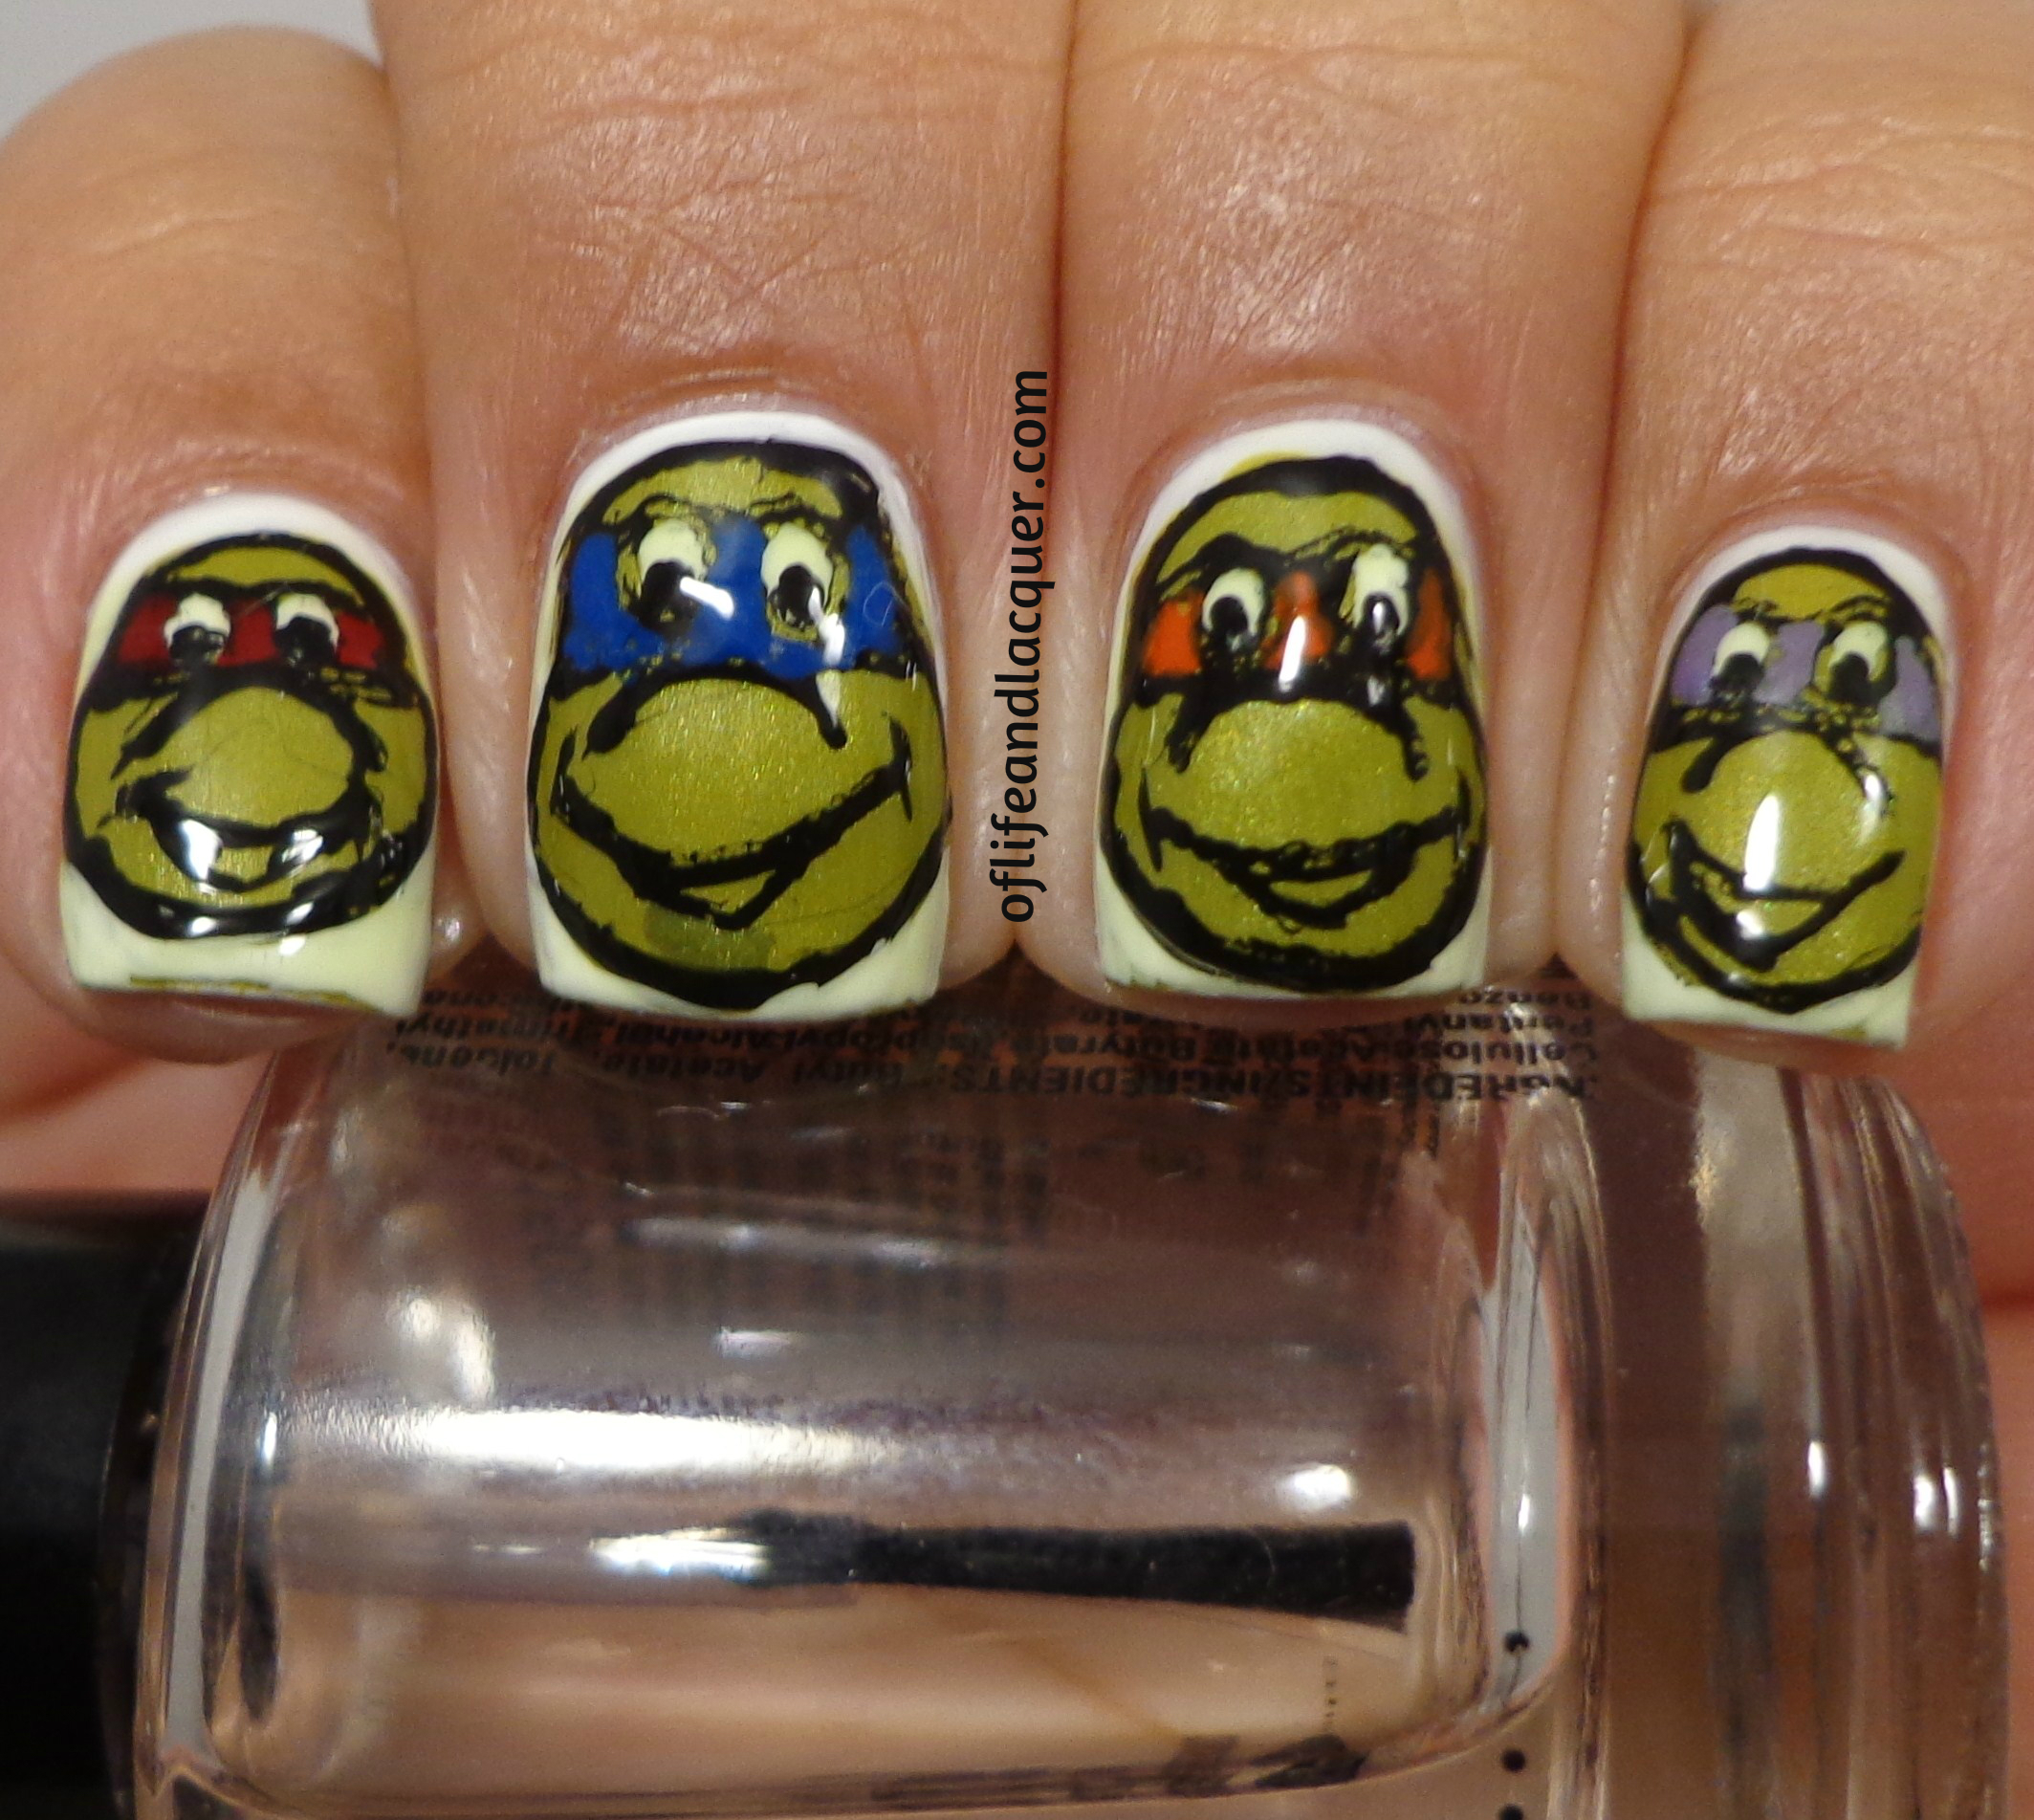 31 Inspired Days of Nail Art – Day 31: Recreate Your Favorite Mani ...